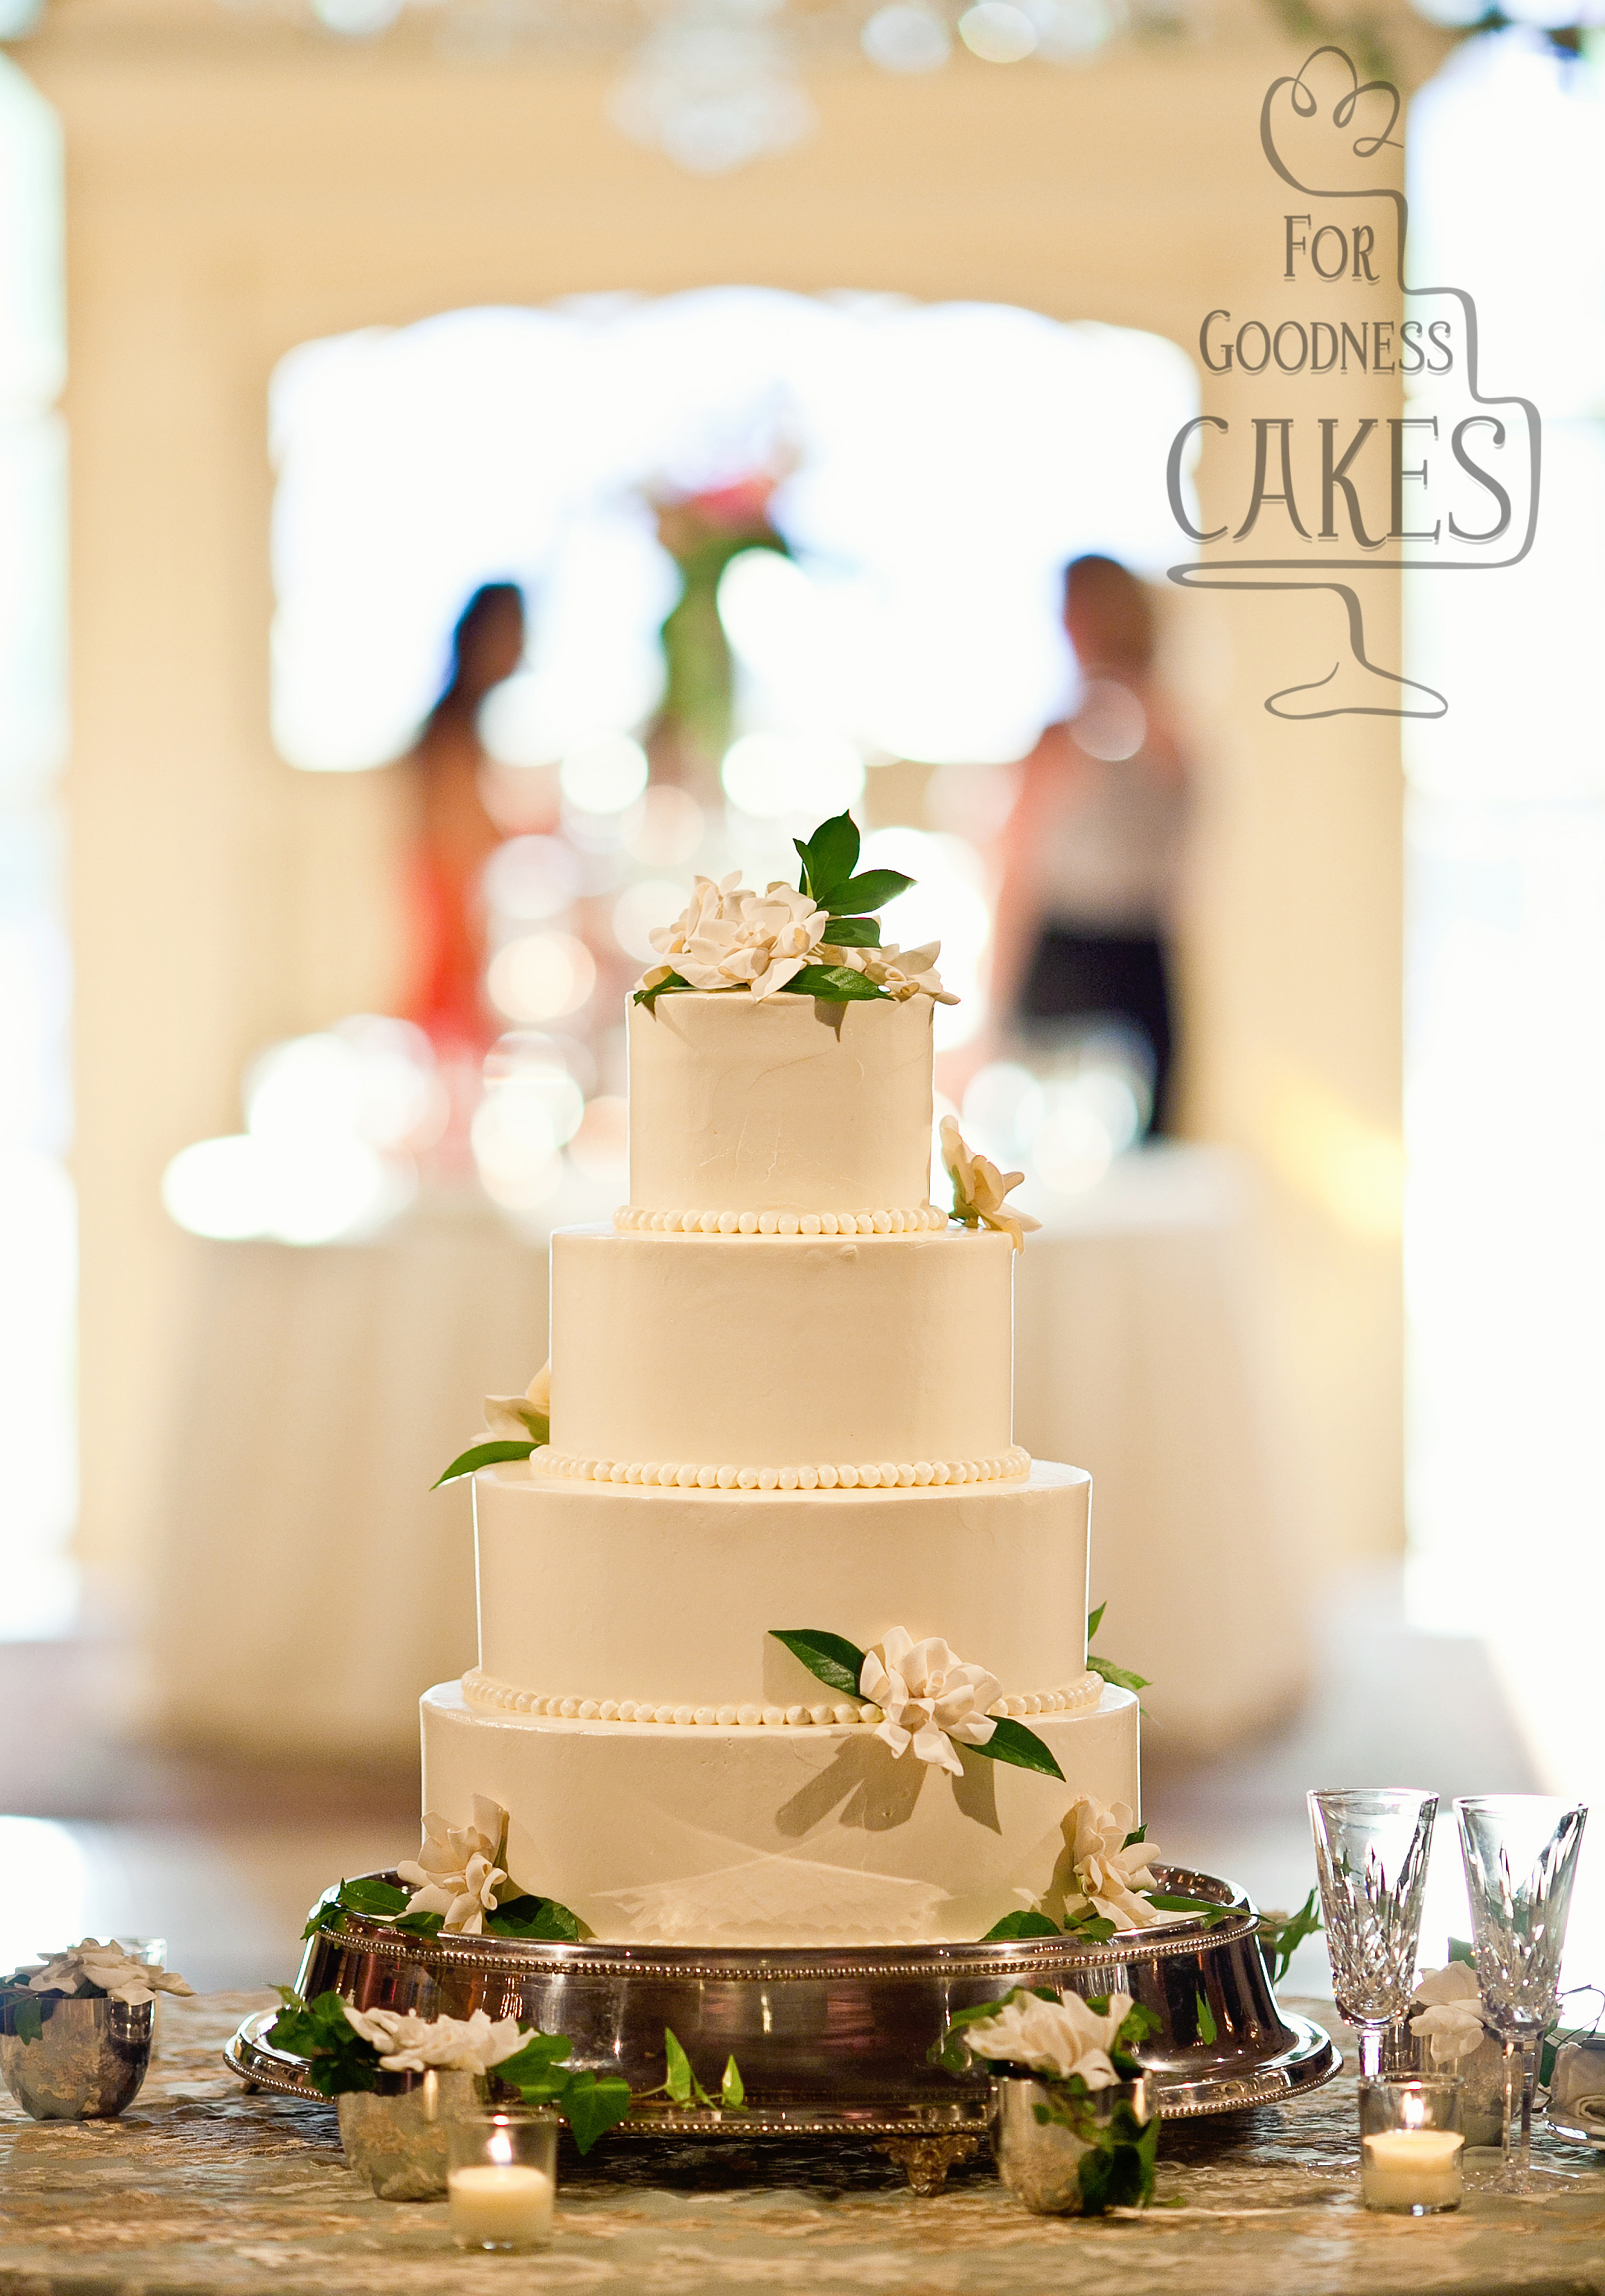 CUNNINGHAM PHOTOARTISTS gardenia wedding cake – For Goodness Cakes ...